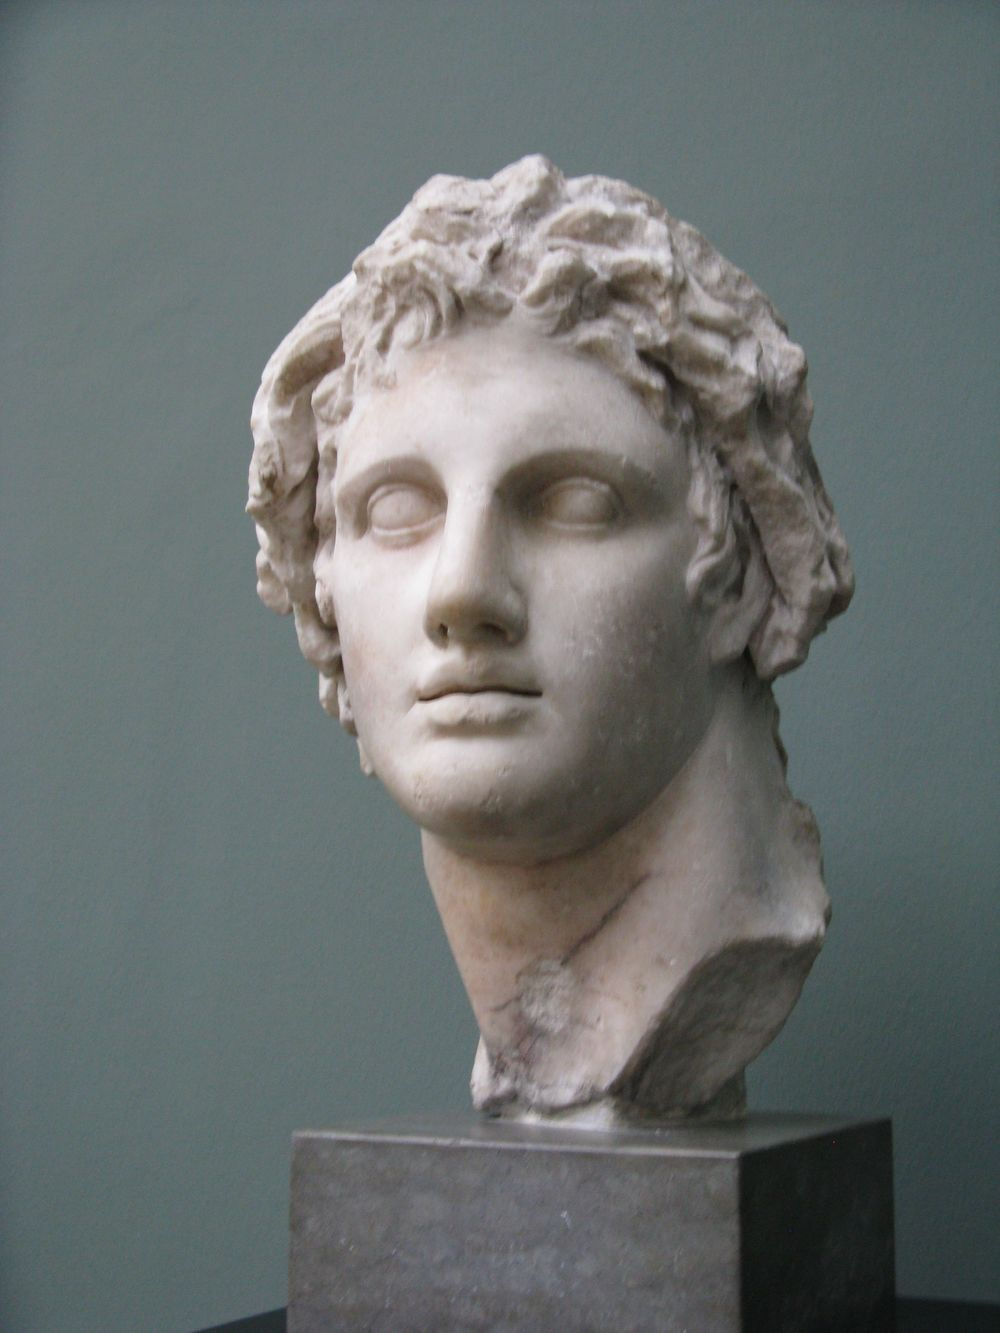 A statue of the head of Alexander the Great. Credit: Wikimedia Commons.